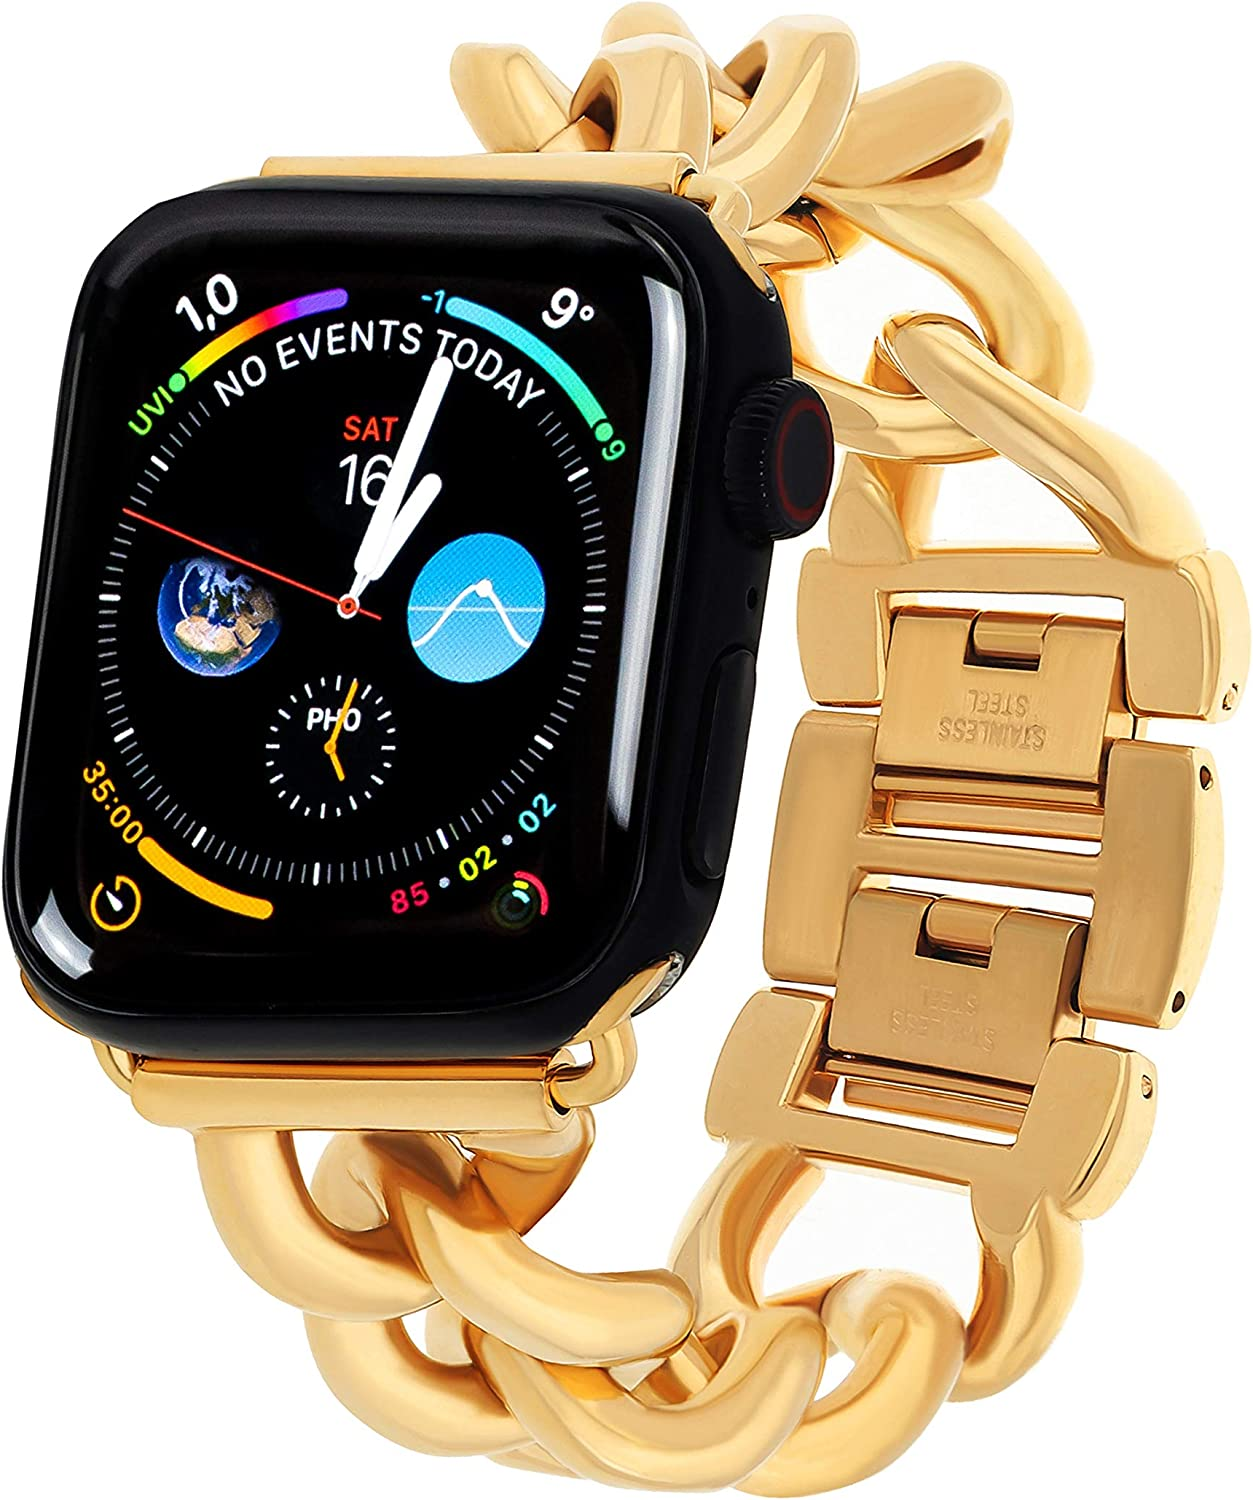 PLTGOOD Apple Watch Band Compatible with 38mm 40mm 42mm 44mm for Women - 18K Gold Plated Stainless Steel Replacement Watch Strap Apple iWatch SE Series 7/6/5/4/3/2/1